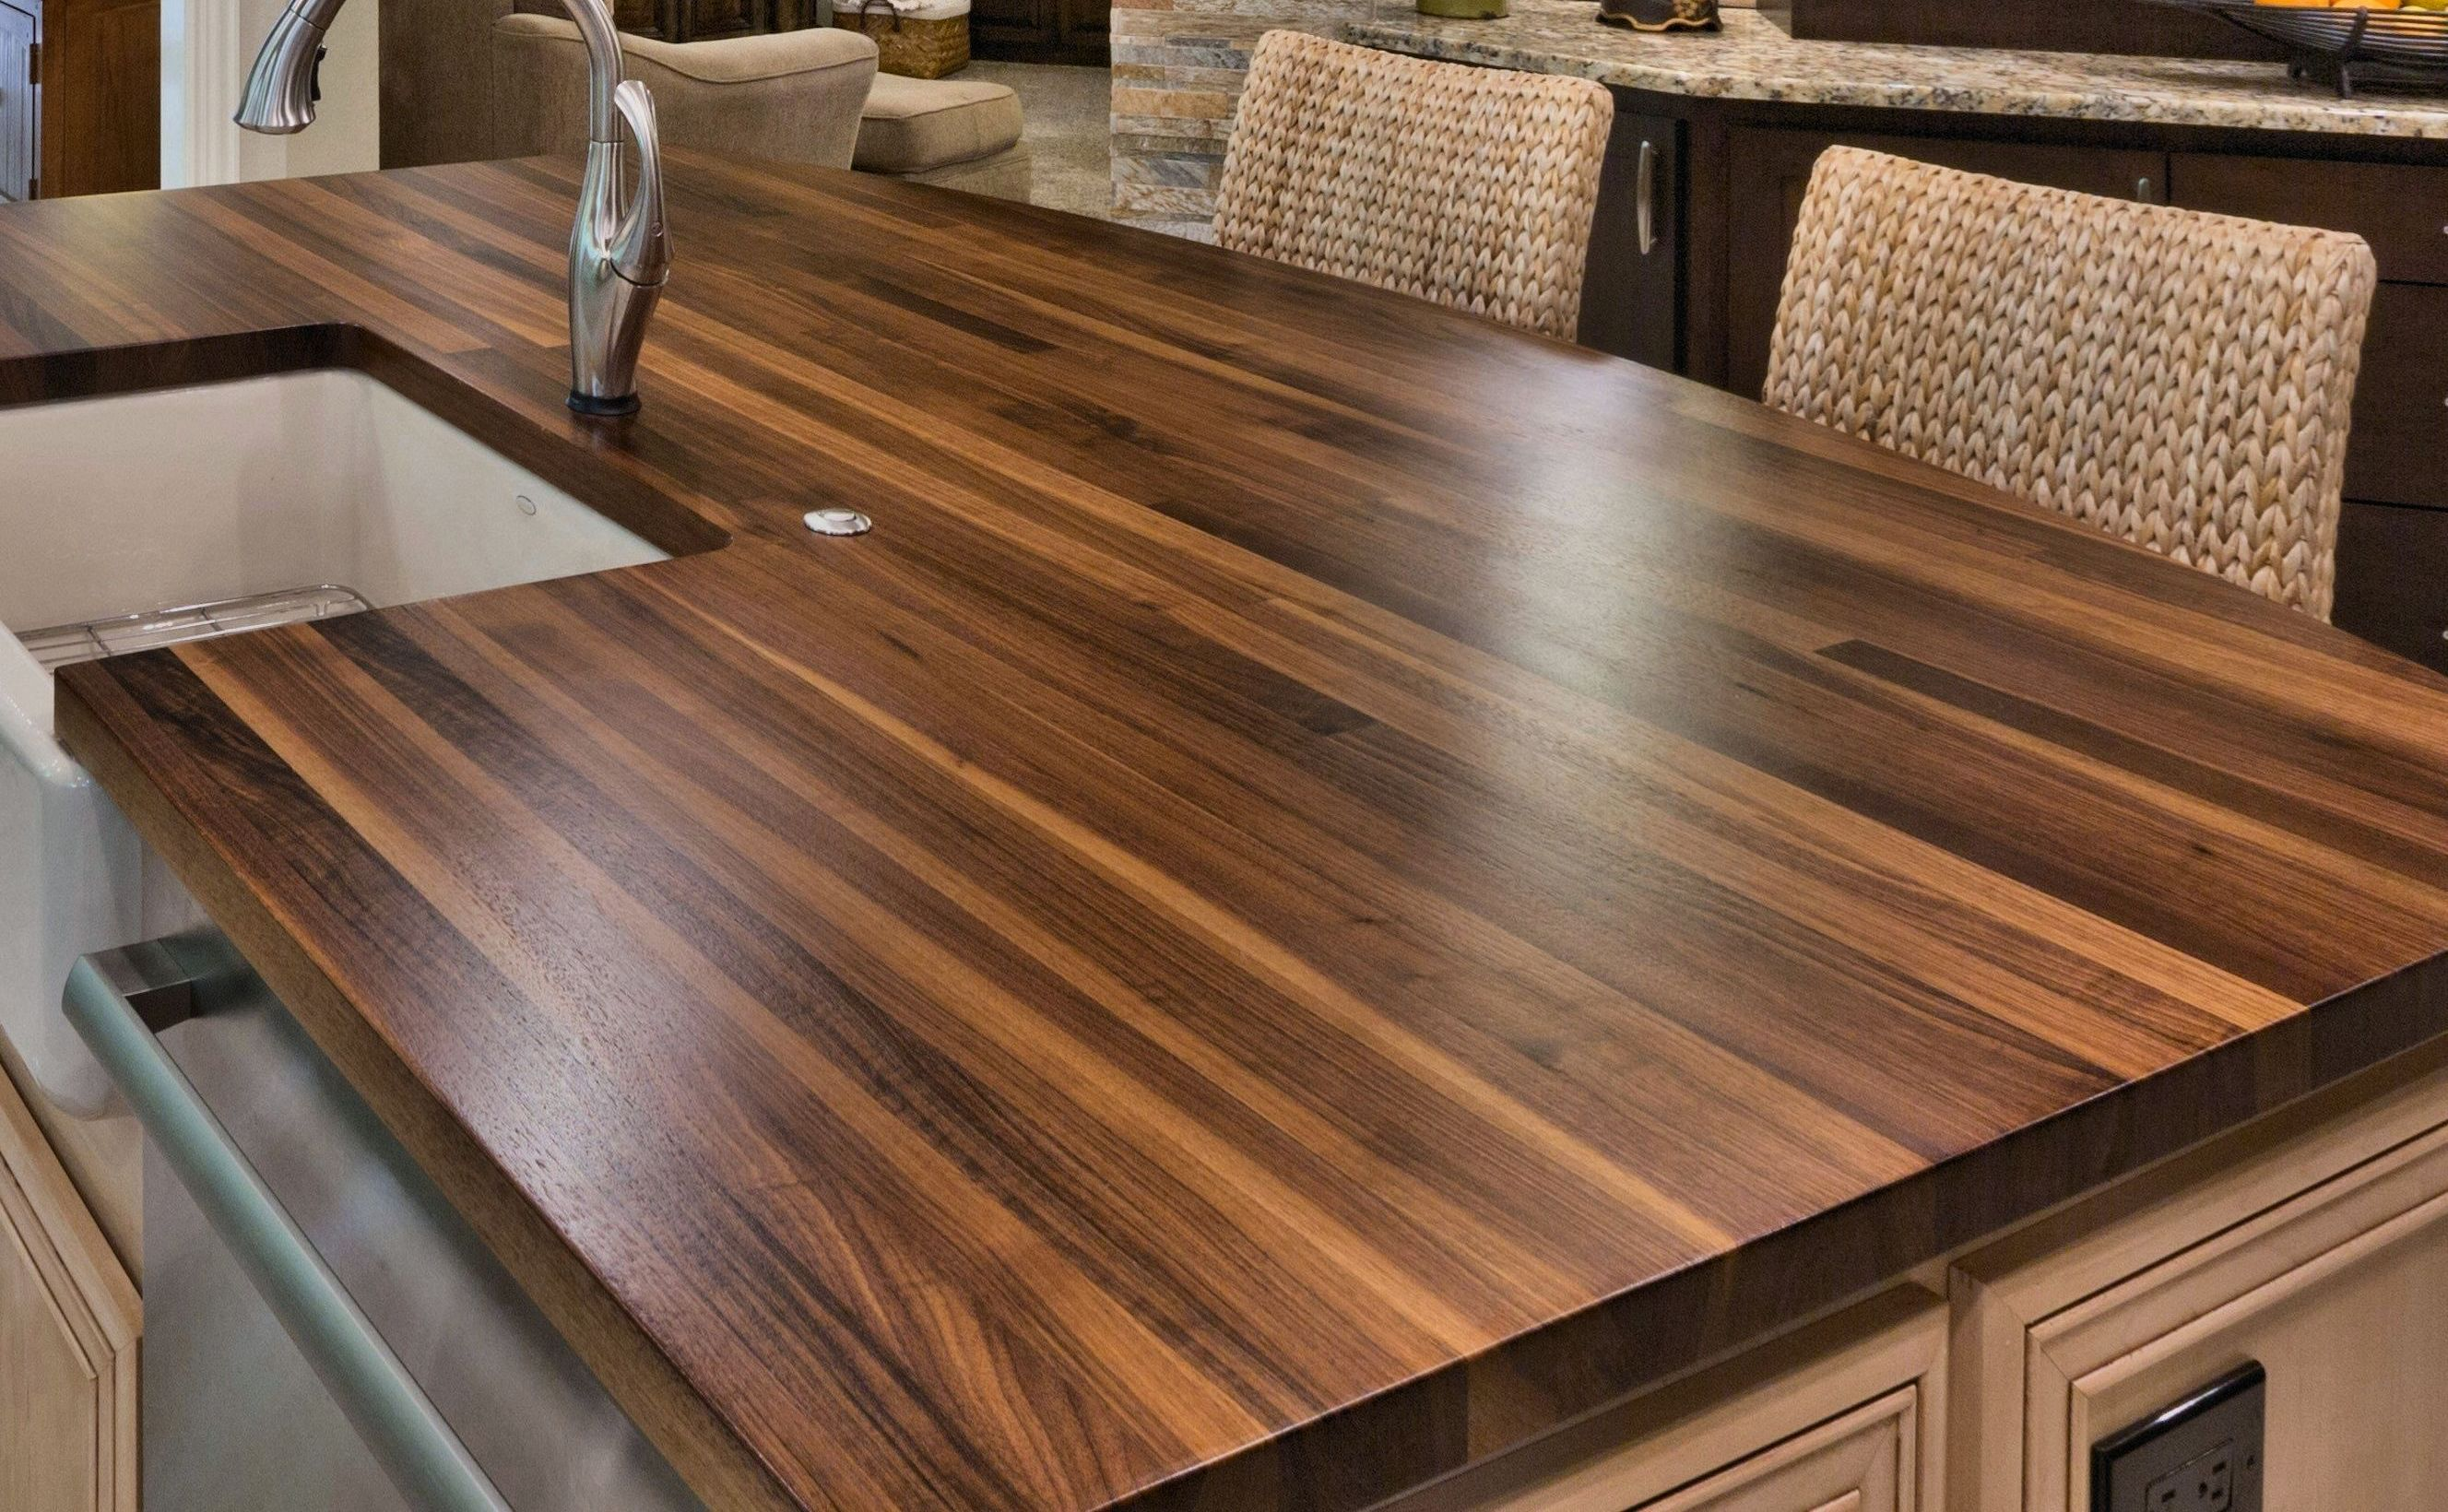 Edge Grain Walnut. Edge Grain Wood Countertops ...